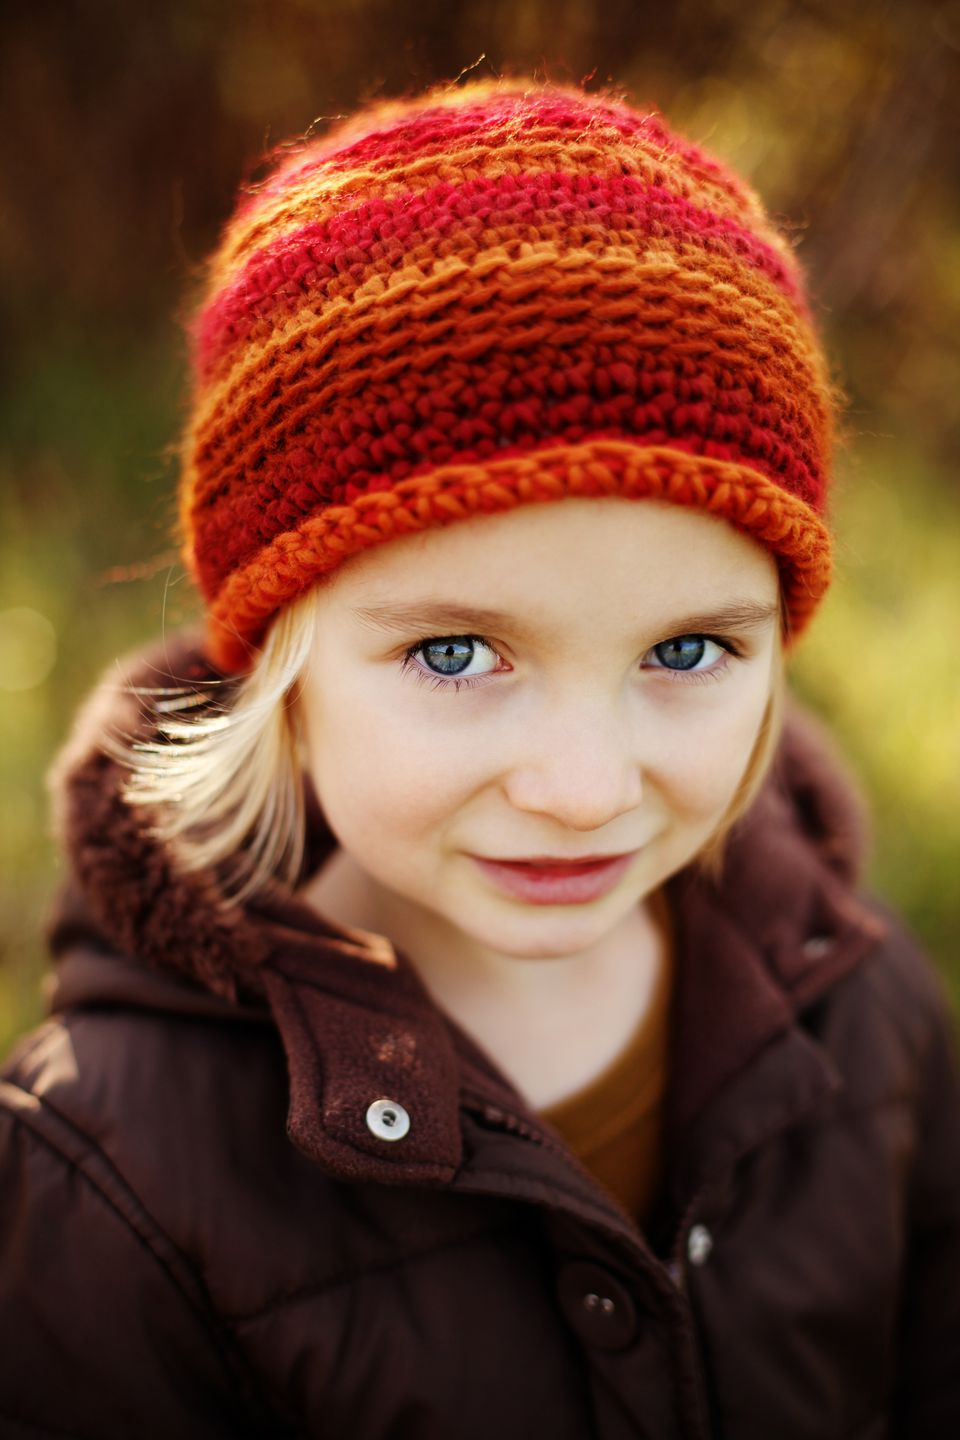 Girl wearing crochet hat